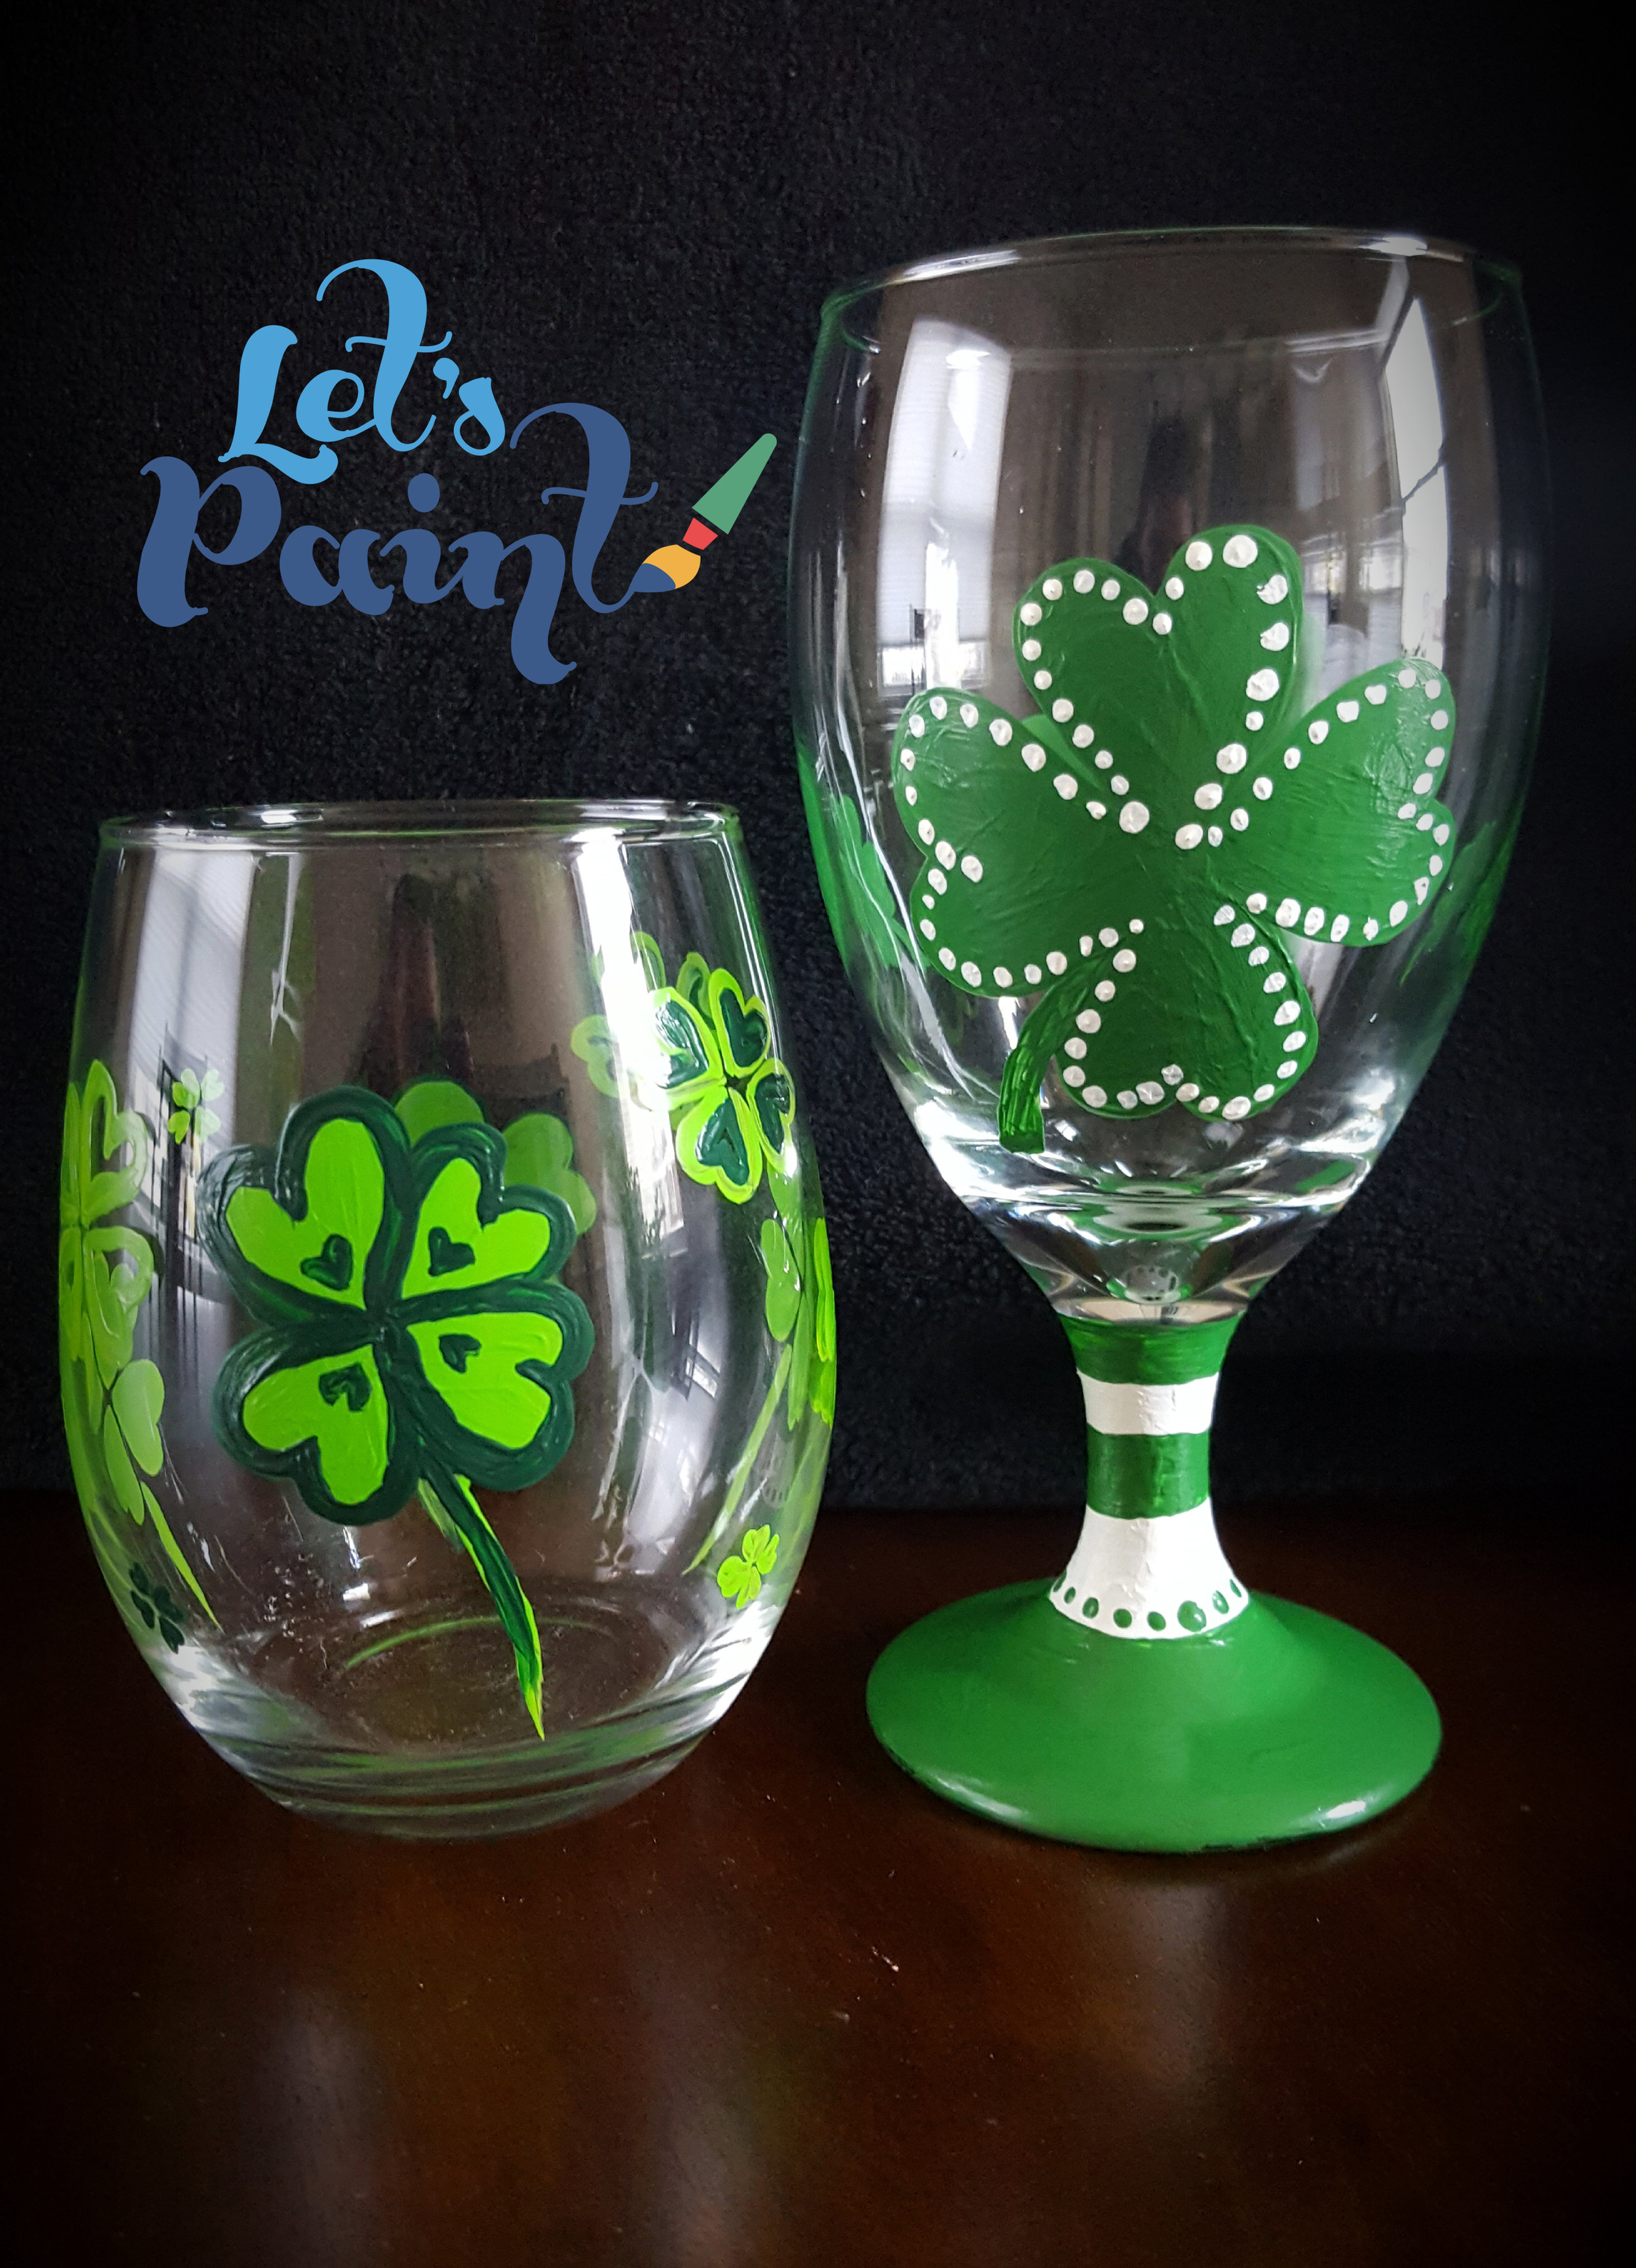 lucky glass painting.jpg